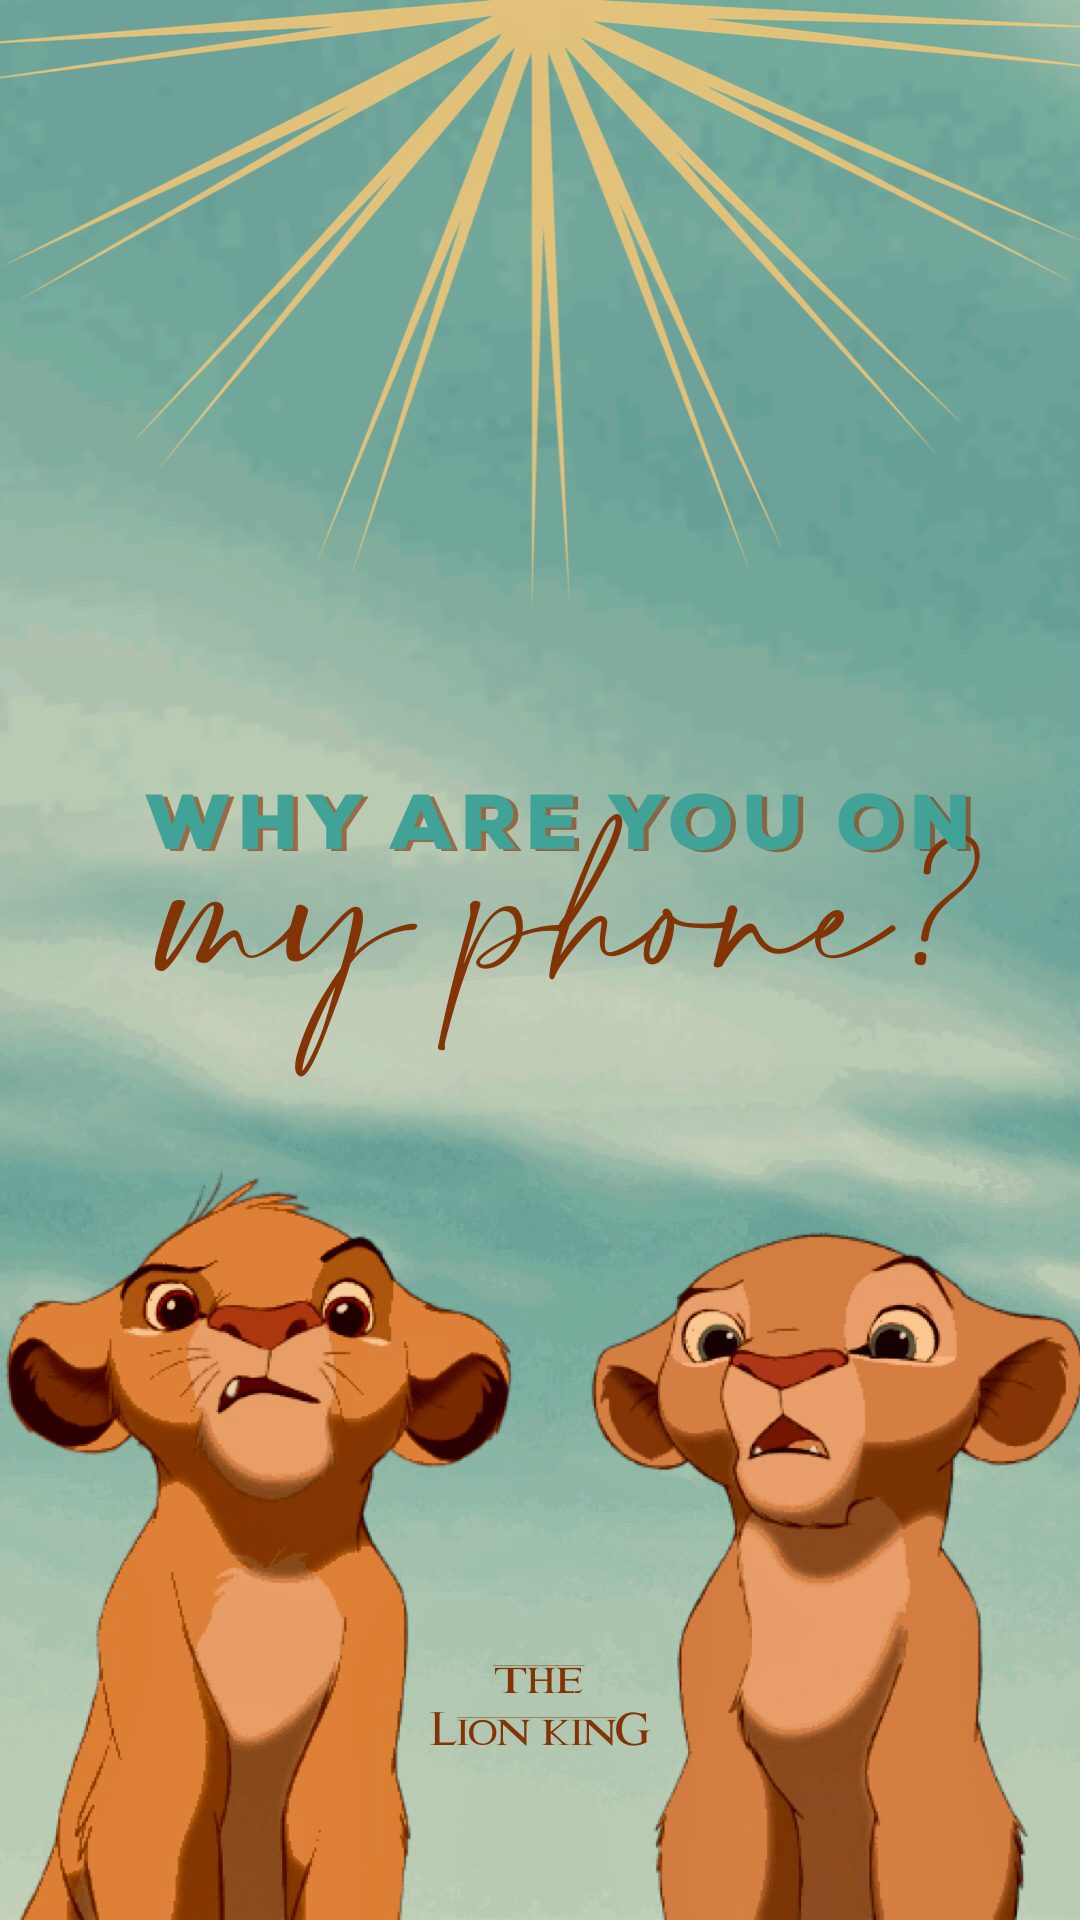 Lion King Wallpaper In 2020 Funny Phone Wallpaper Cartoon Wallpaper Iphone Cute Disney Wallpaper